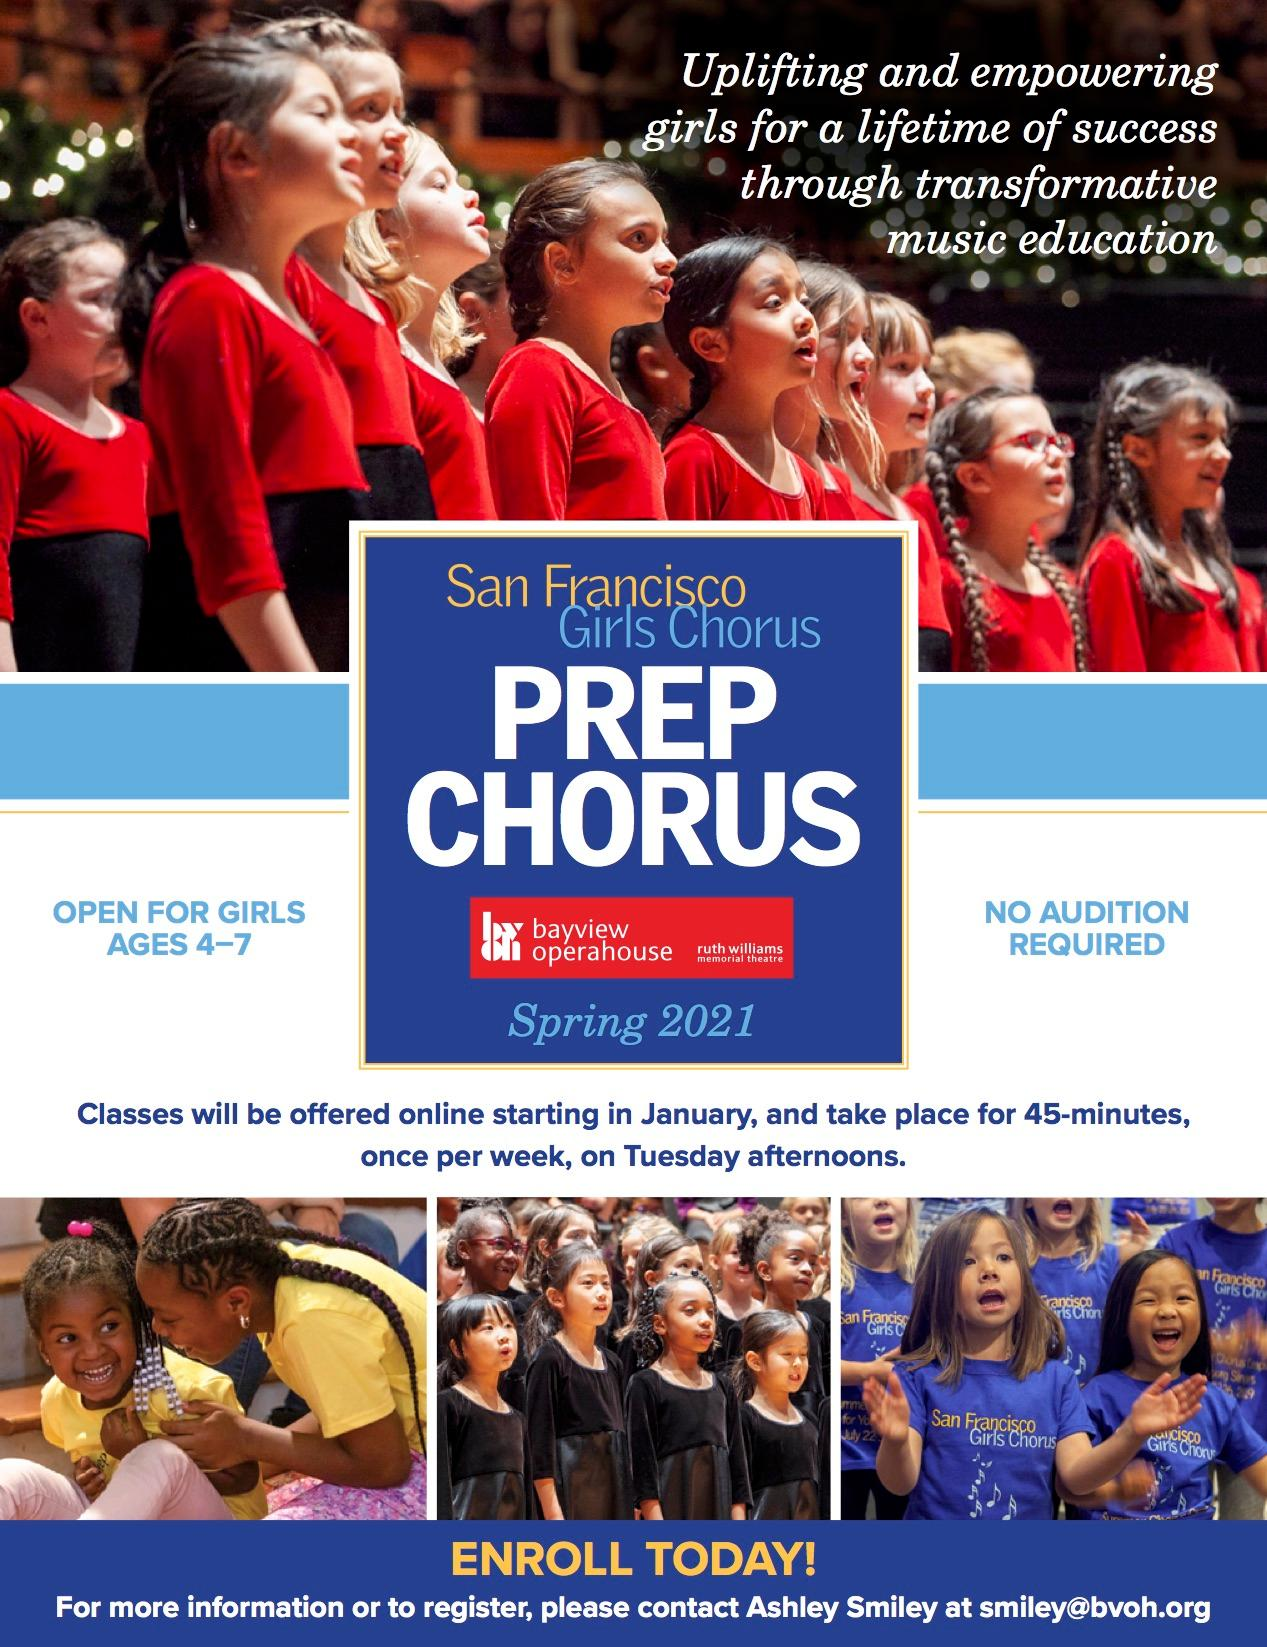 Spring Registration Opening Soon for SFGC Prep Chorus